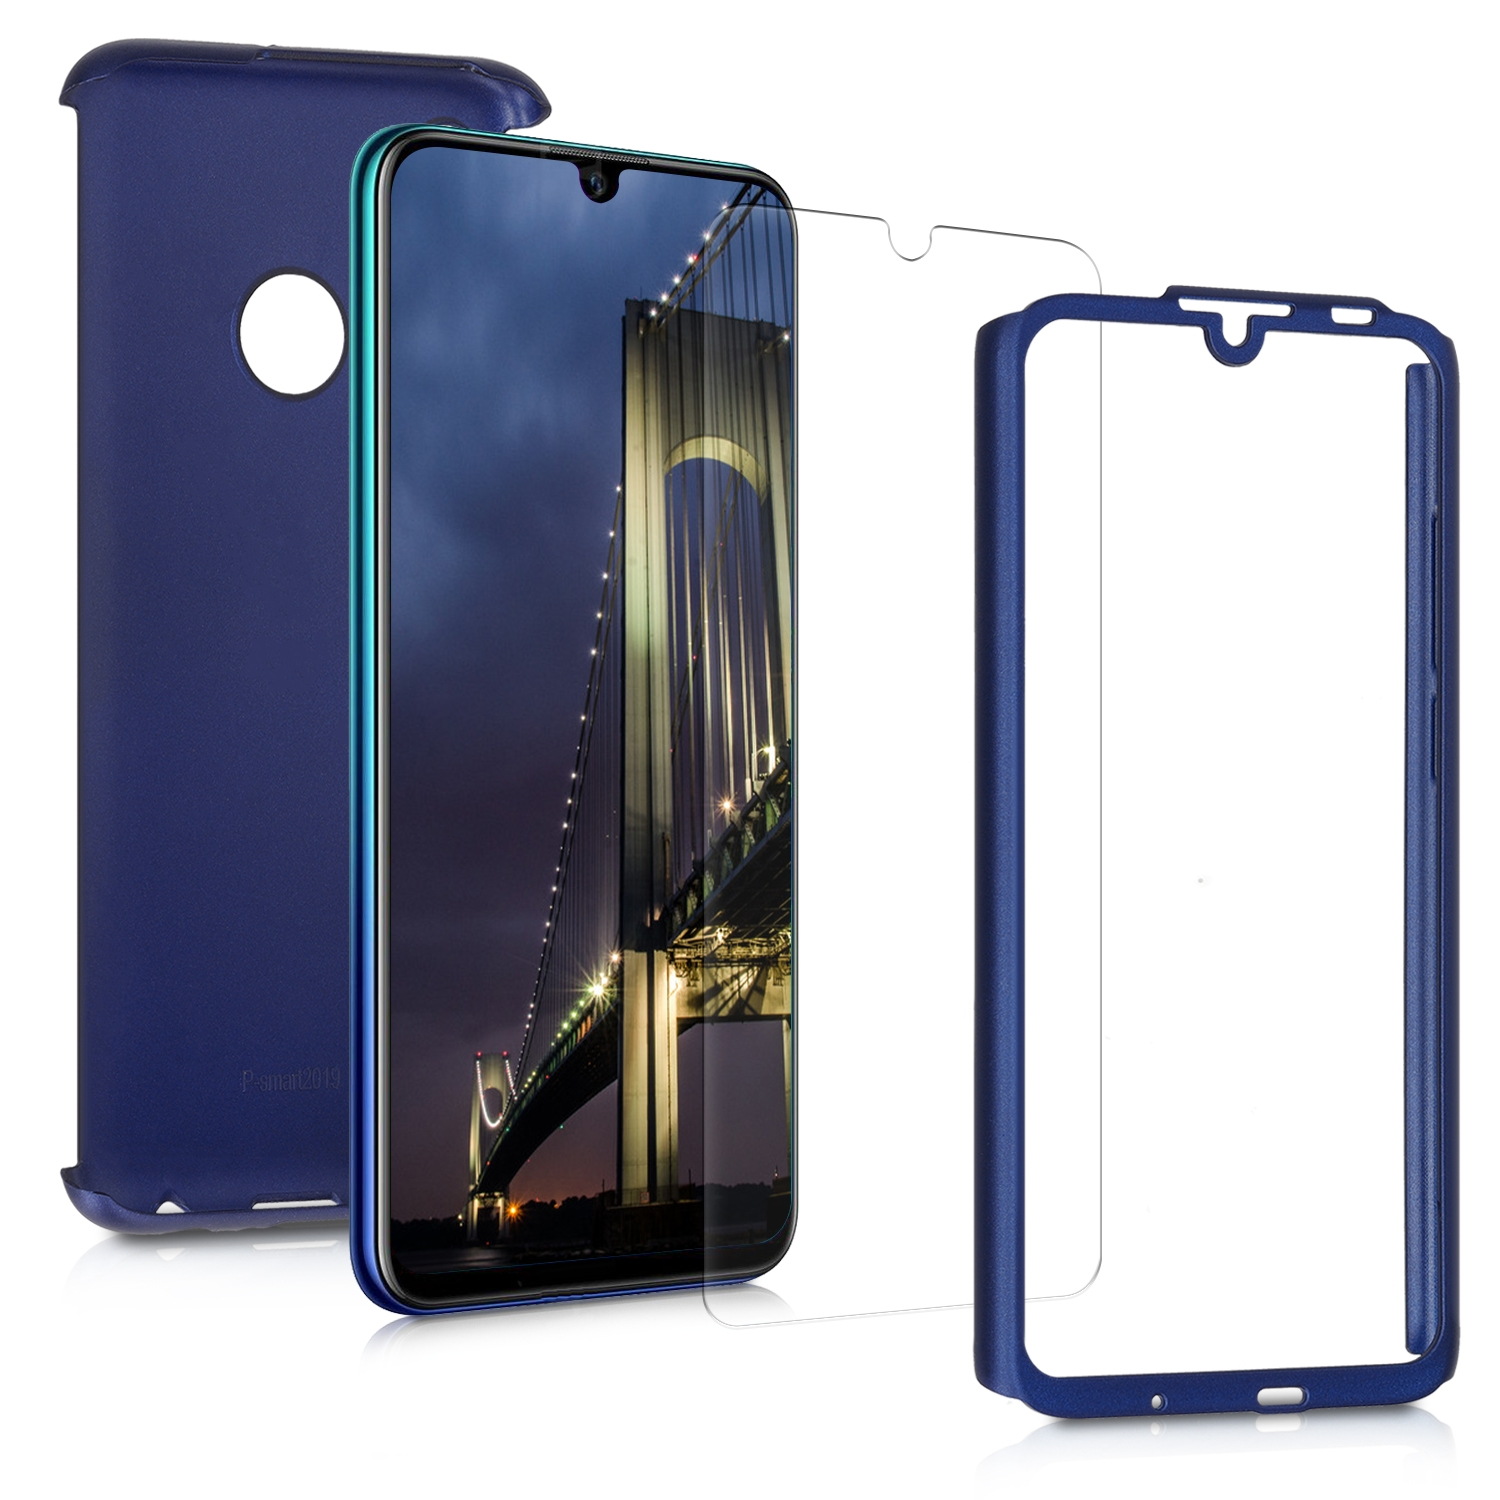 KW Θήκη Full Body Huawei P Smart 2019 & Tempered Glass - Metallic Blue (47391.64)